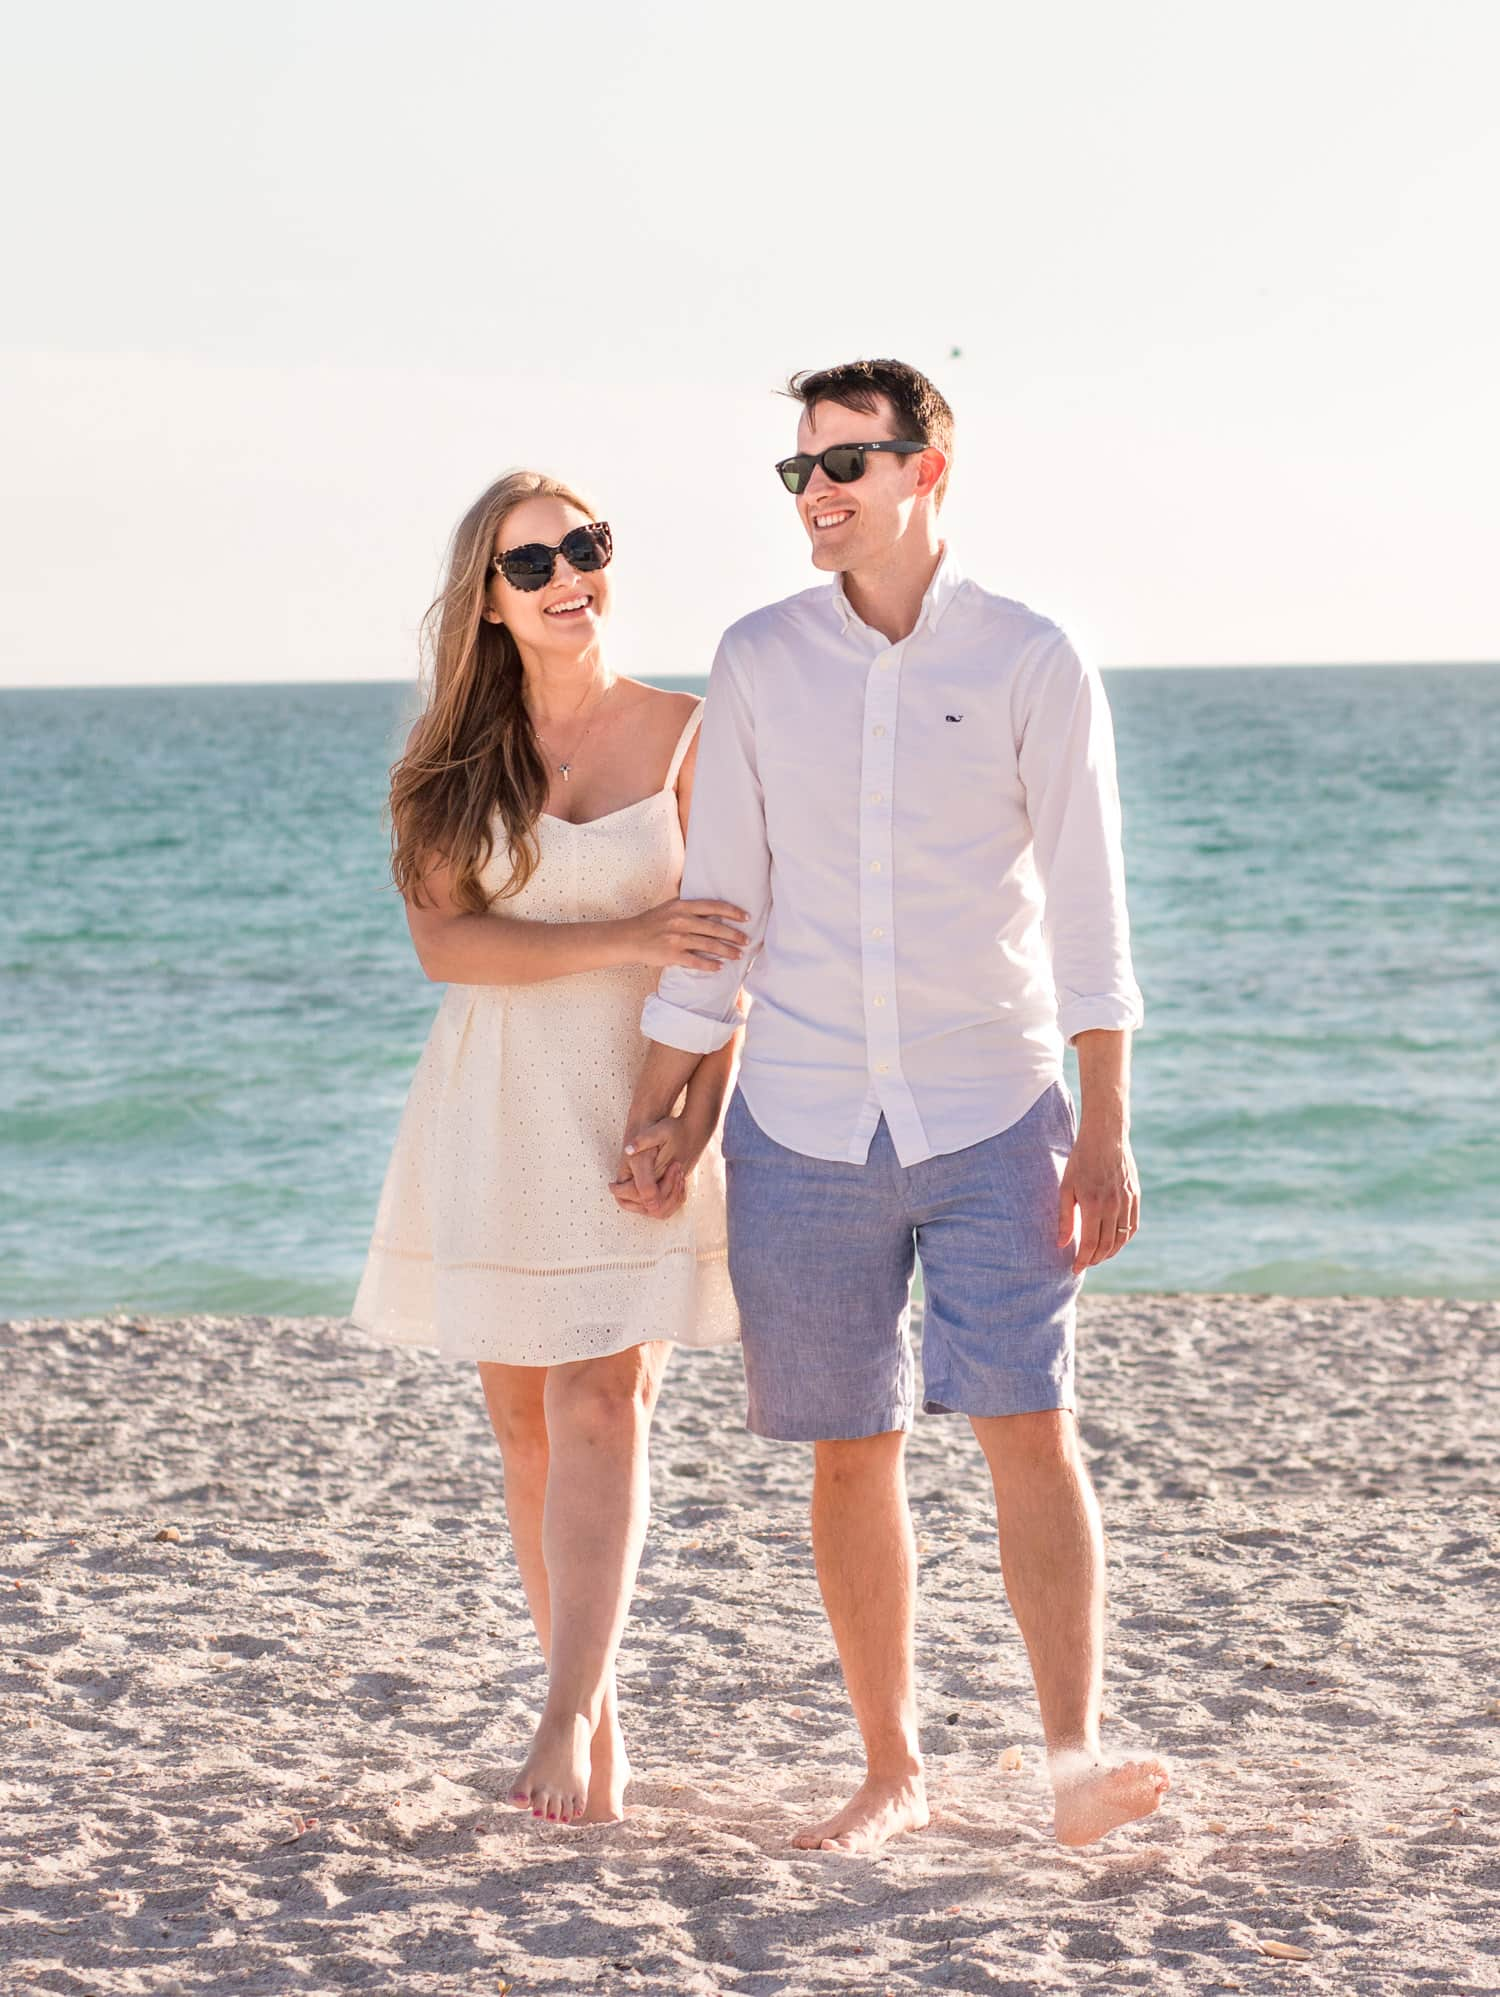 How to plan a romantic weekend getaway in Longboat Key, Florida, including a relaxing stay at The Resort at Longboat Key Club! #LoveFL sponsored by @visitflorida | beach walk on the private beach outside of The Resort at Longboat Key Club | Florida travel tips, beach vacation, vacation ideas, vacation goals, travel blogger Ashley Brooke Nicholas, Florida travel guide, Longboat Key travel guide, Sarasota travel guide, beautiful beaches, boating, affordable travel, US travel, summer vacation, spring break ideas, romantic vacation